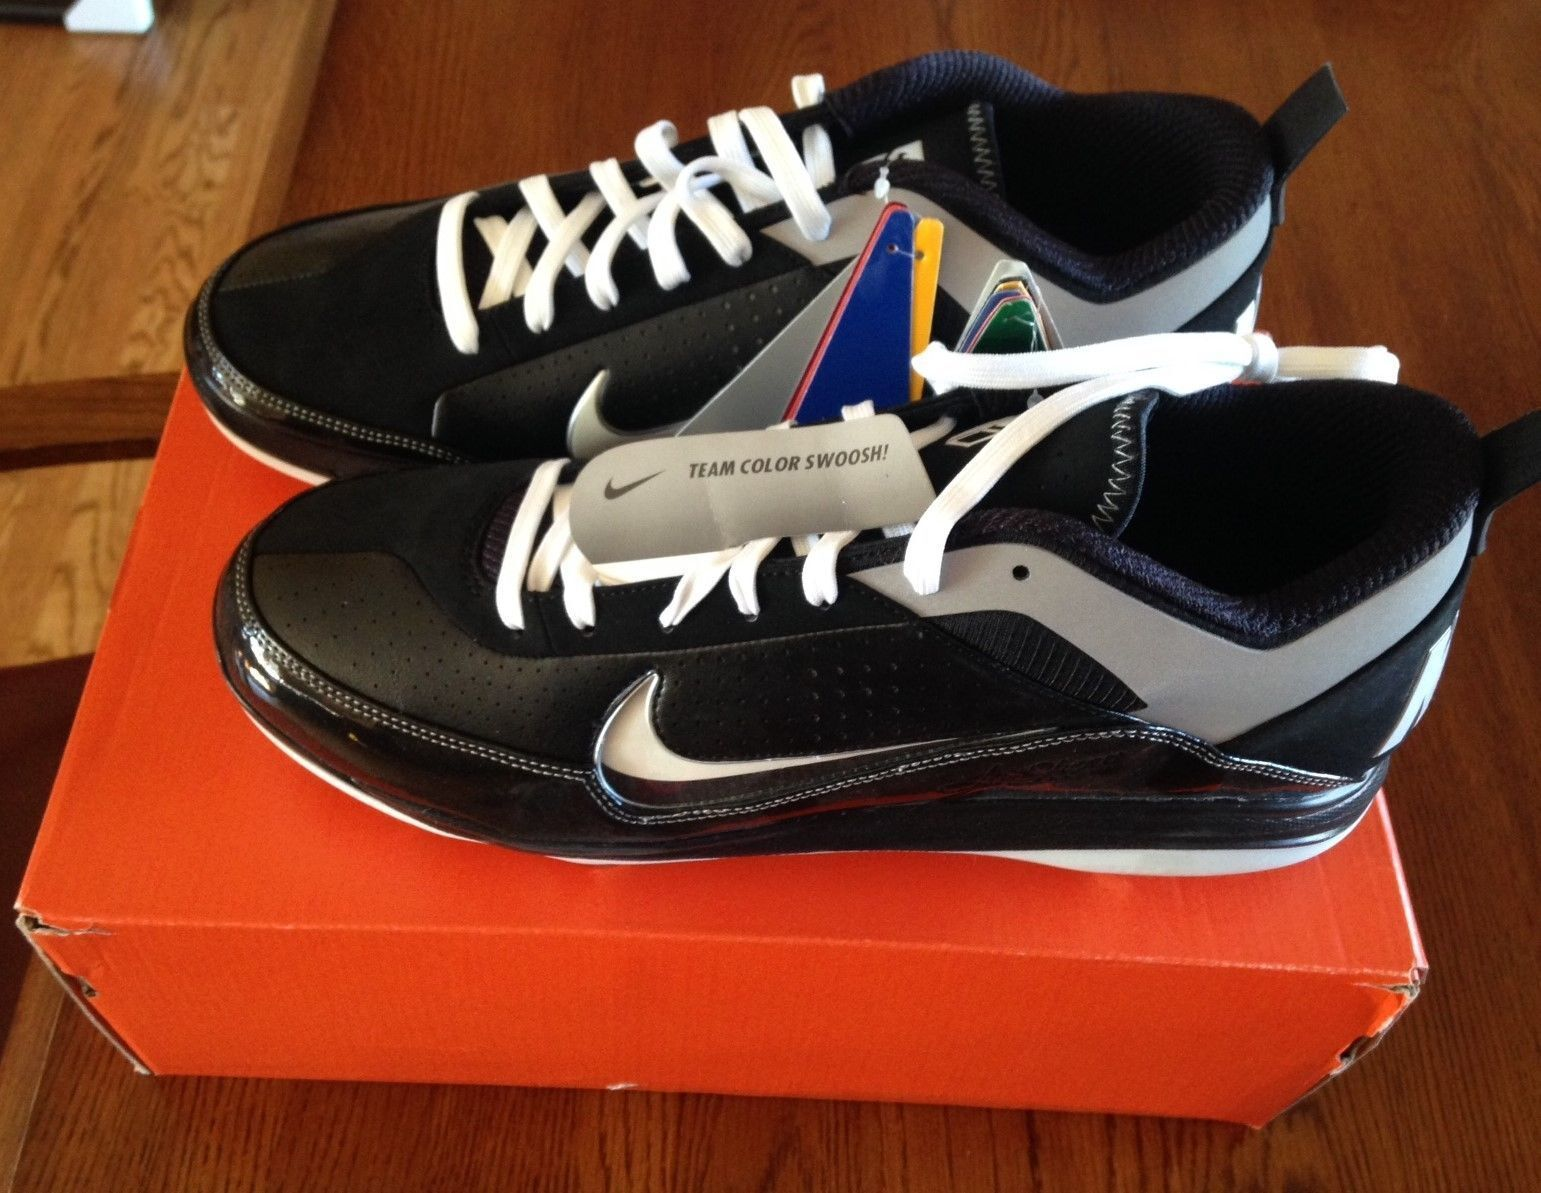 The latest discount shoes for men and women MENS NIKE AIR SHOW ELITE 2 BLACK BASEBALL METAL SPIKES Comfortable